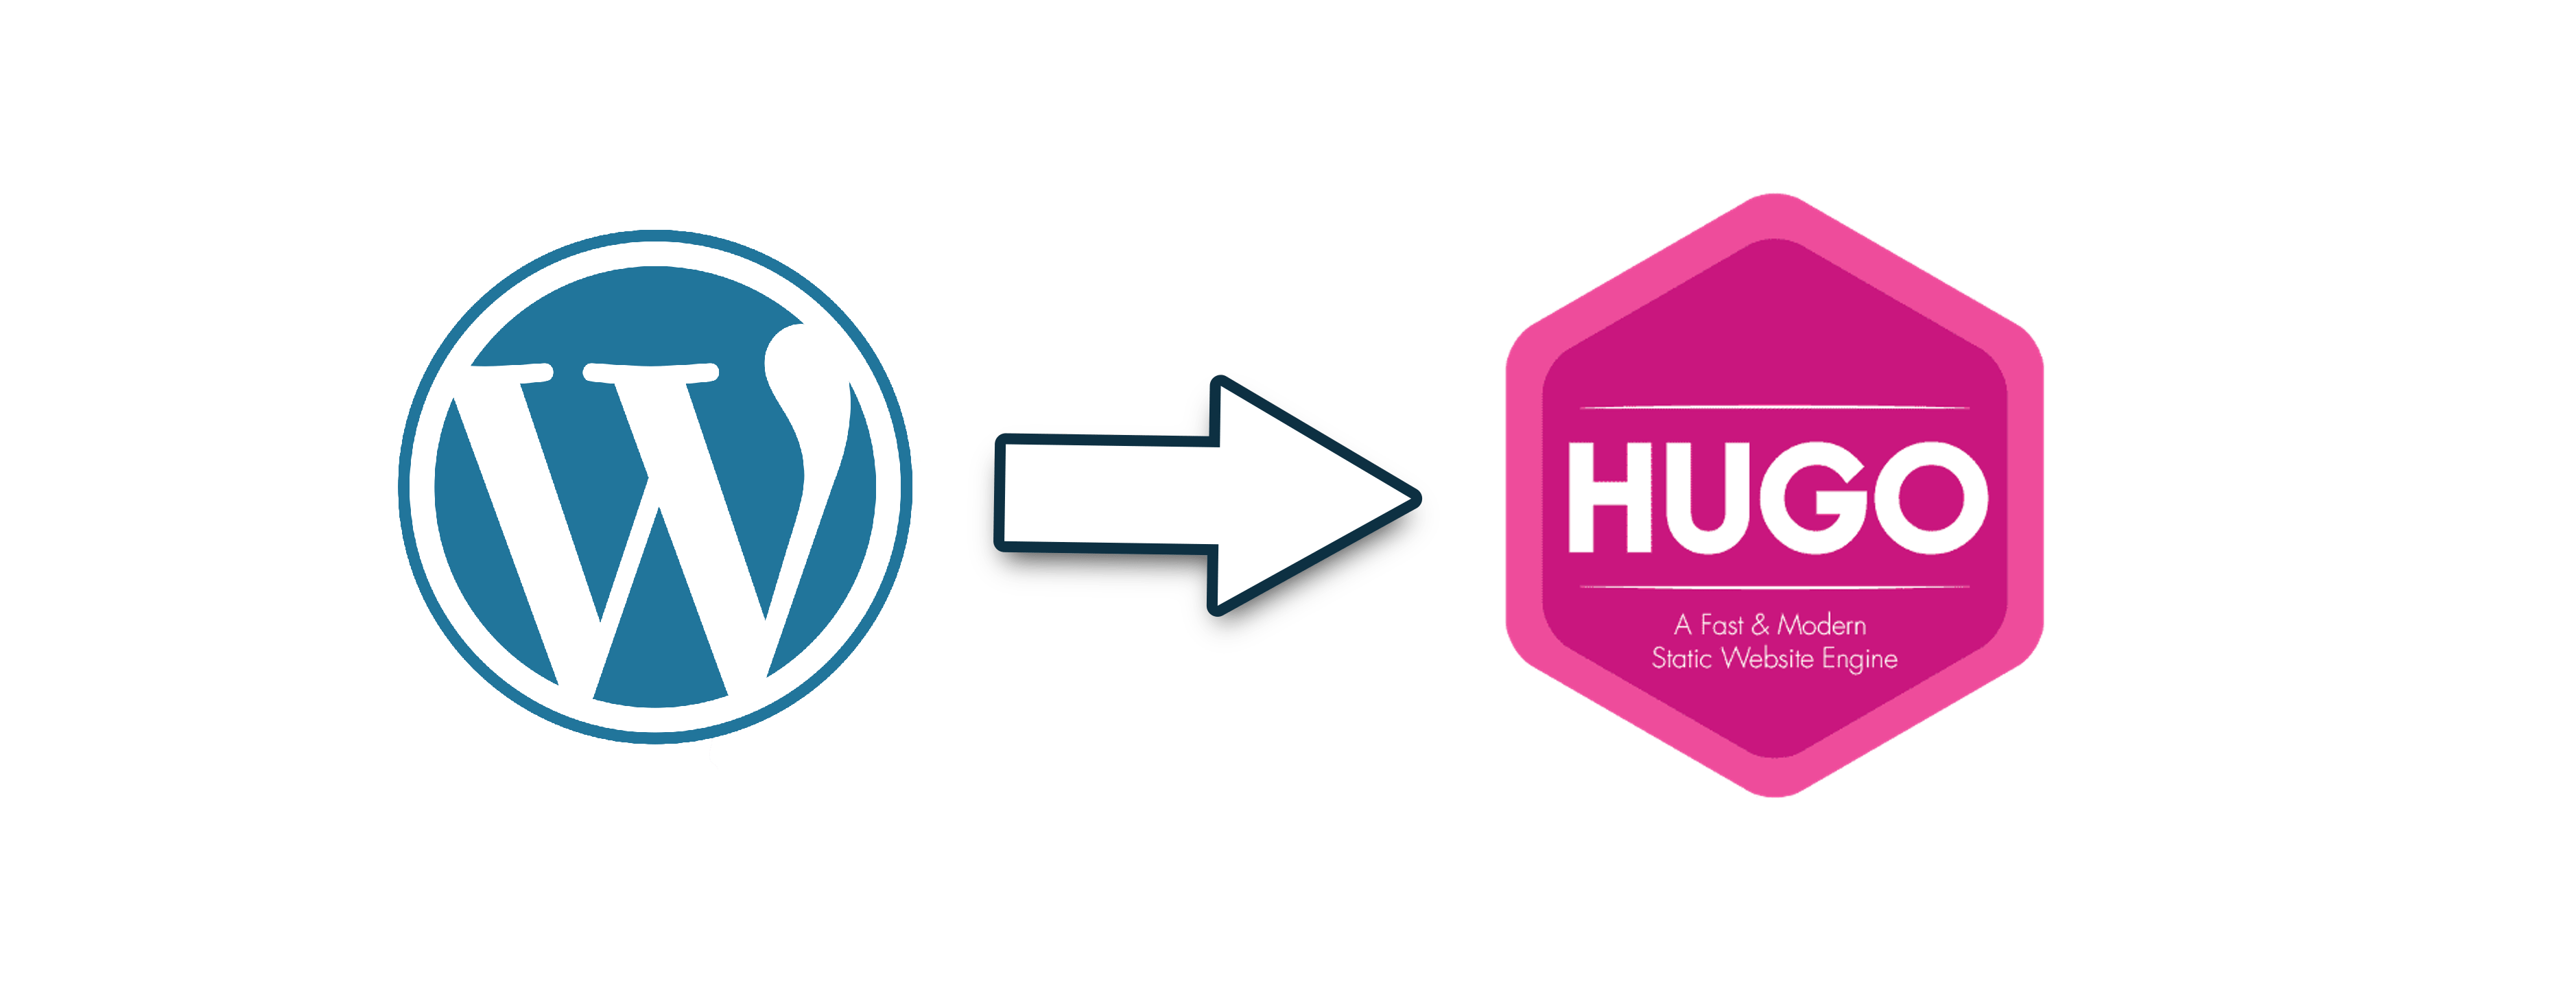 Related Content: Migrating a Website from WordPress to Hugo